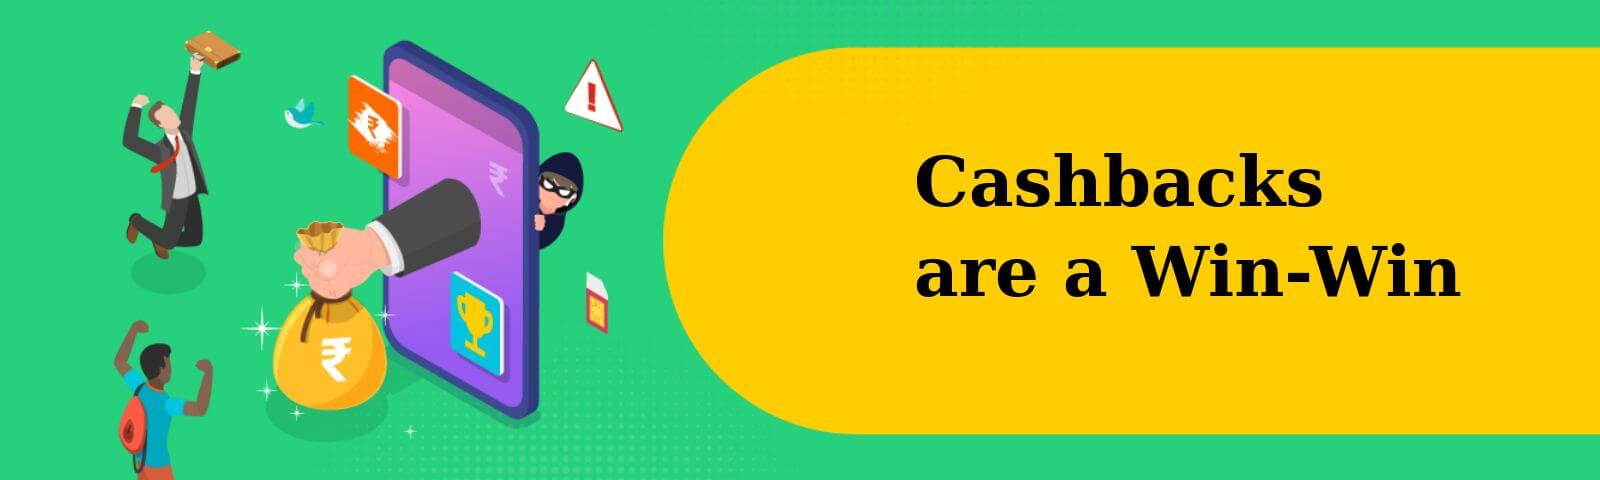 Here's Why We Think Cashbacks are a Win-Win!